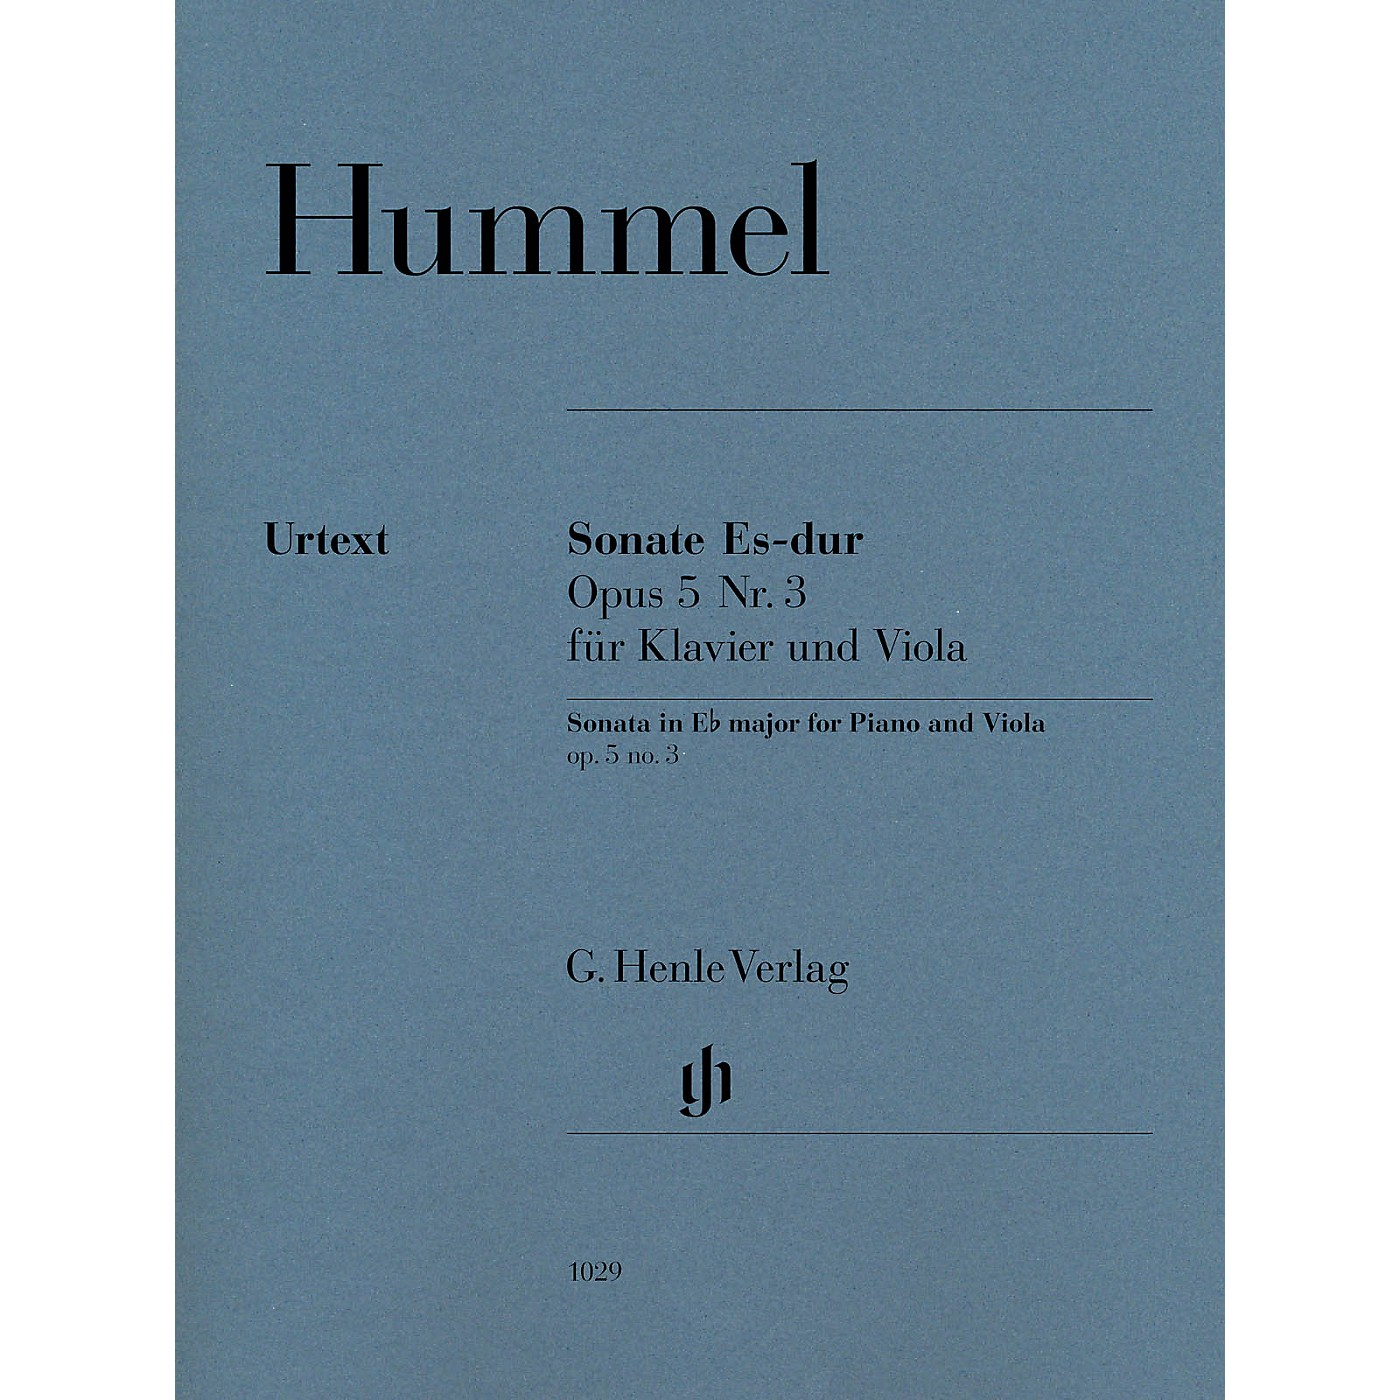 G. Henle Verlag Sonata for Piano and Viola in E-flat Major Op 5 No 3 by Johann Nepomuk Hummel Edited by Ernst Herttrich thumbnail